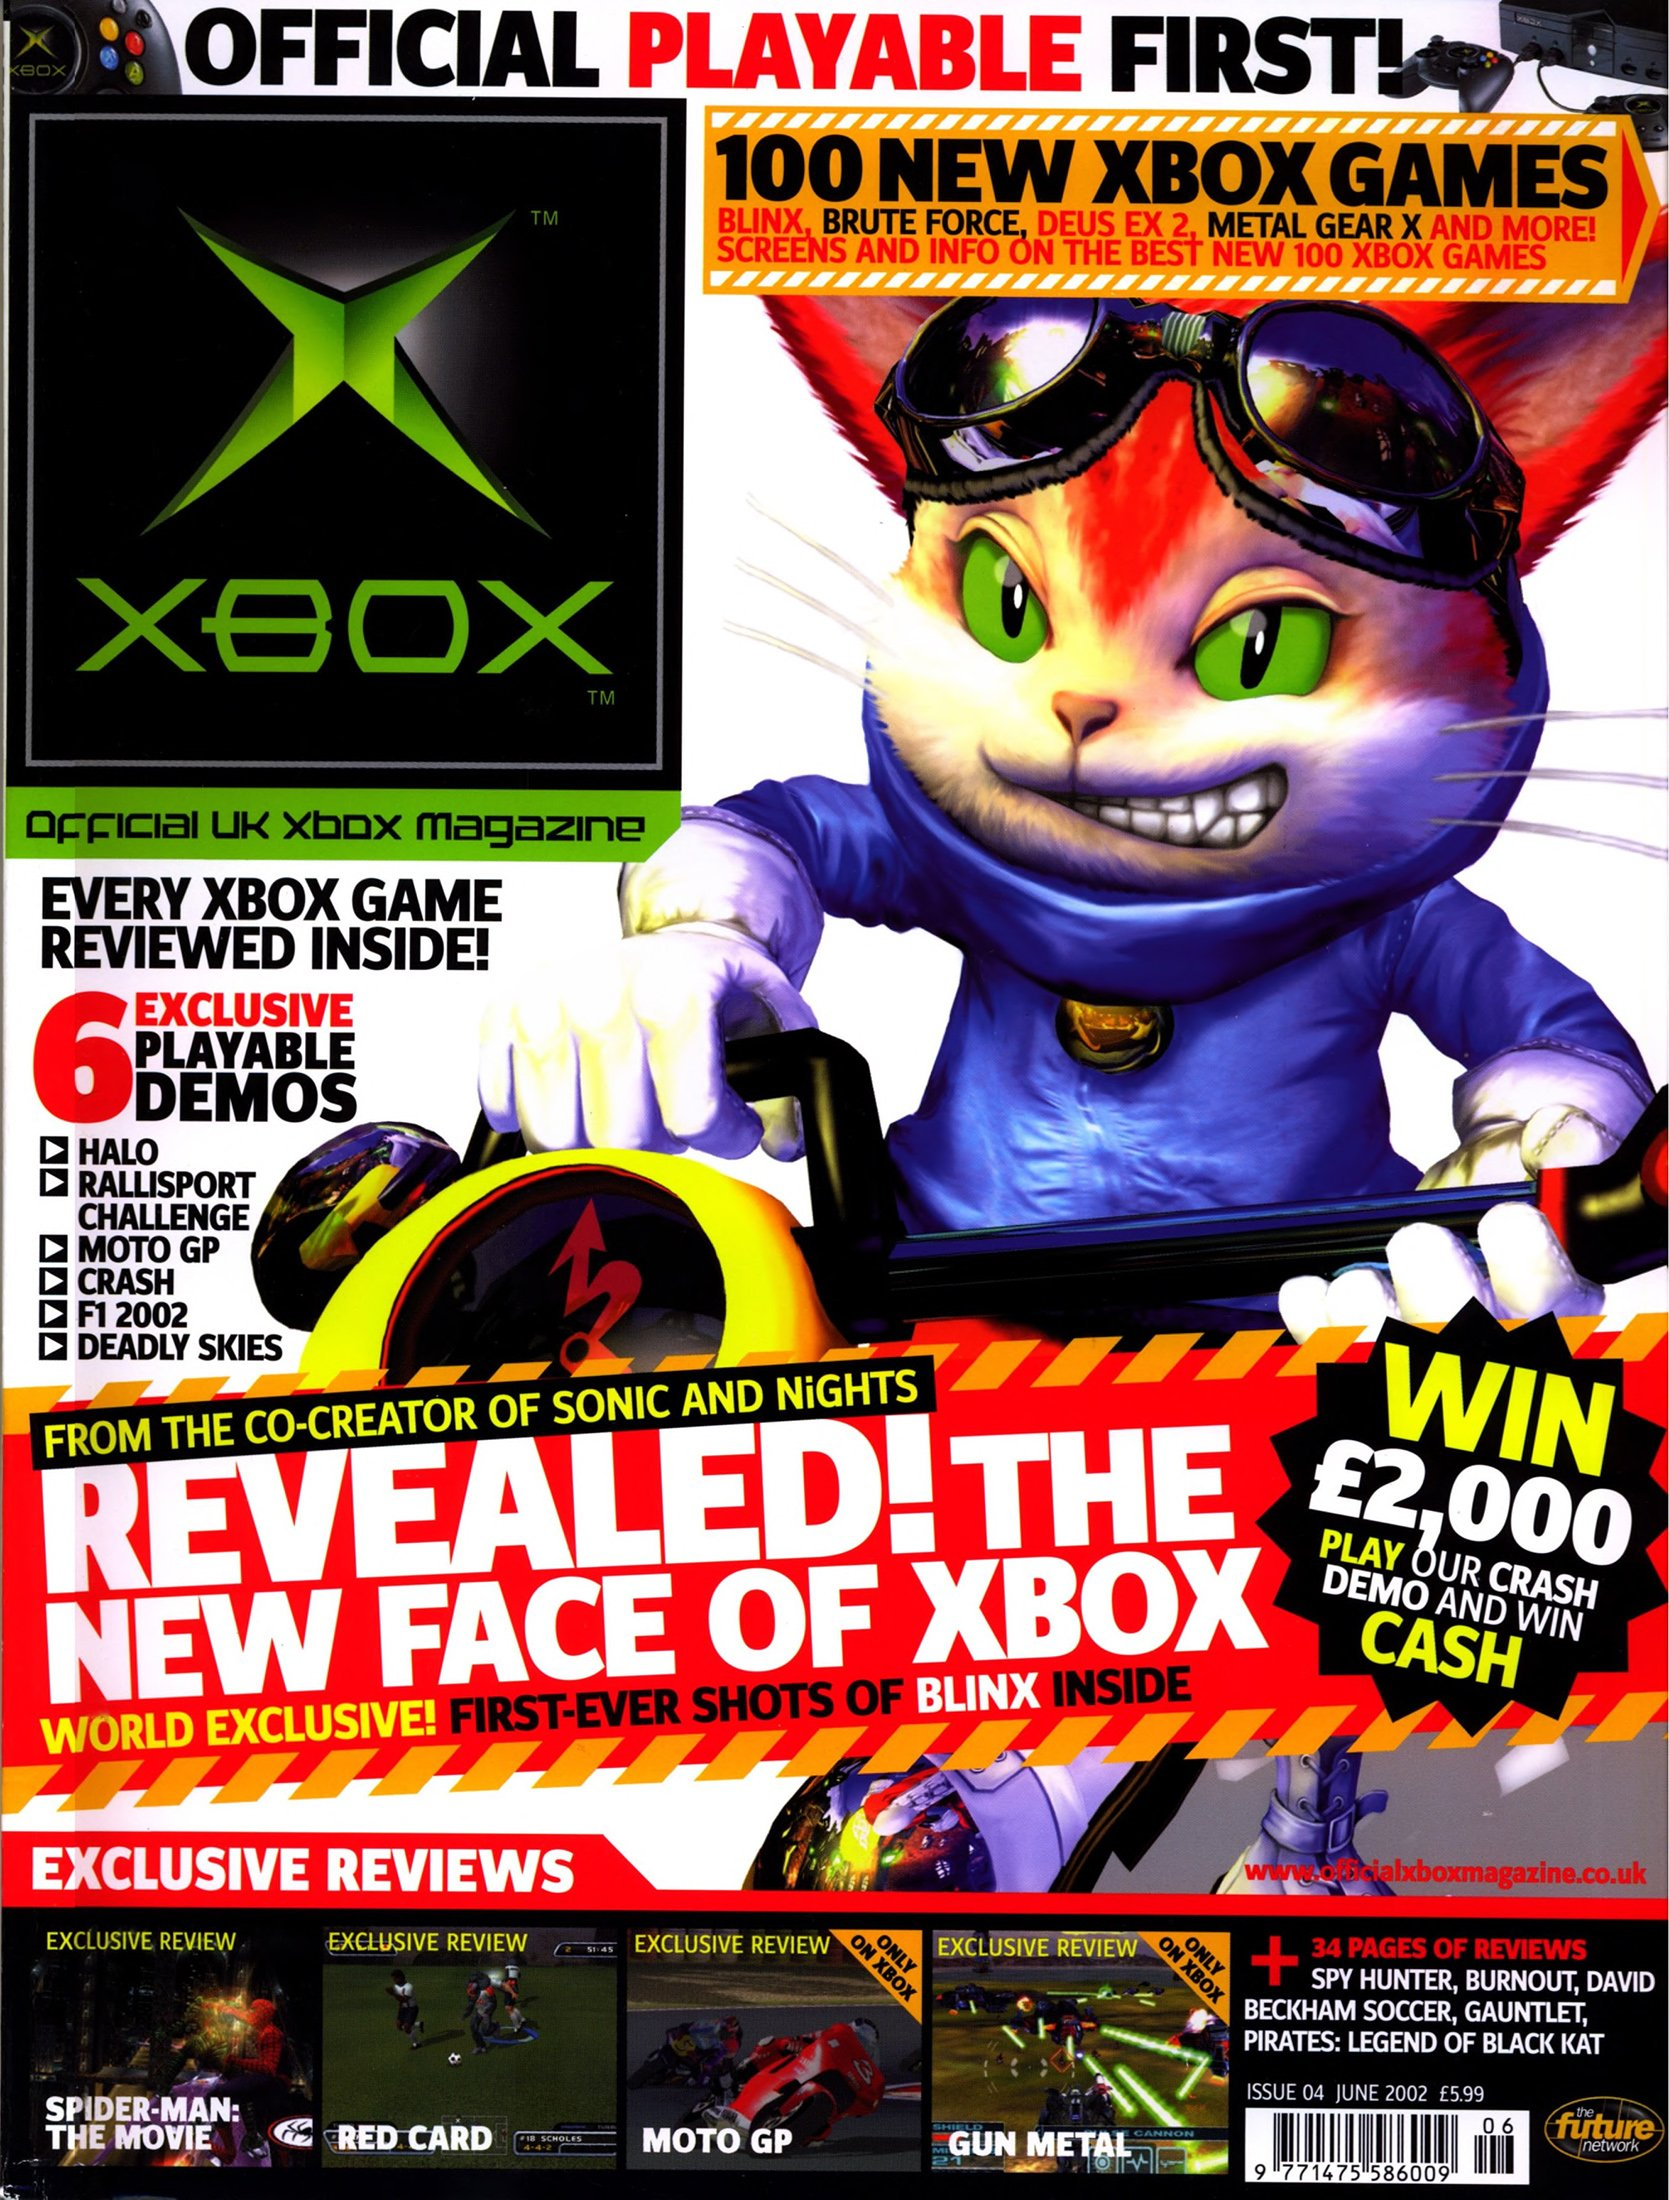 Official UK Xbox Magazine Issue 04 - June 2002